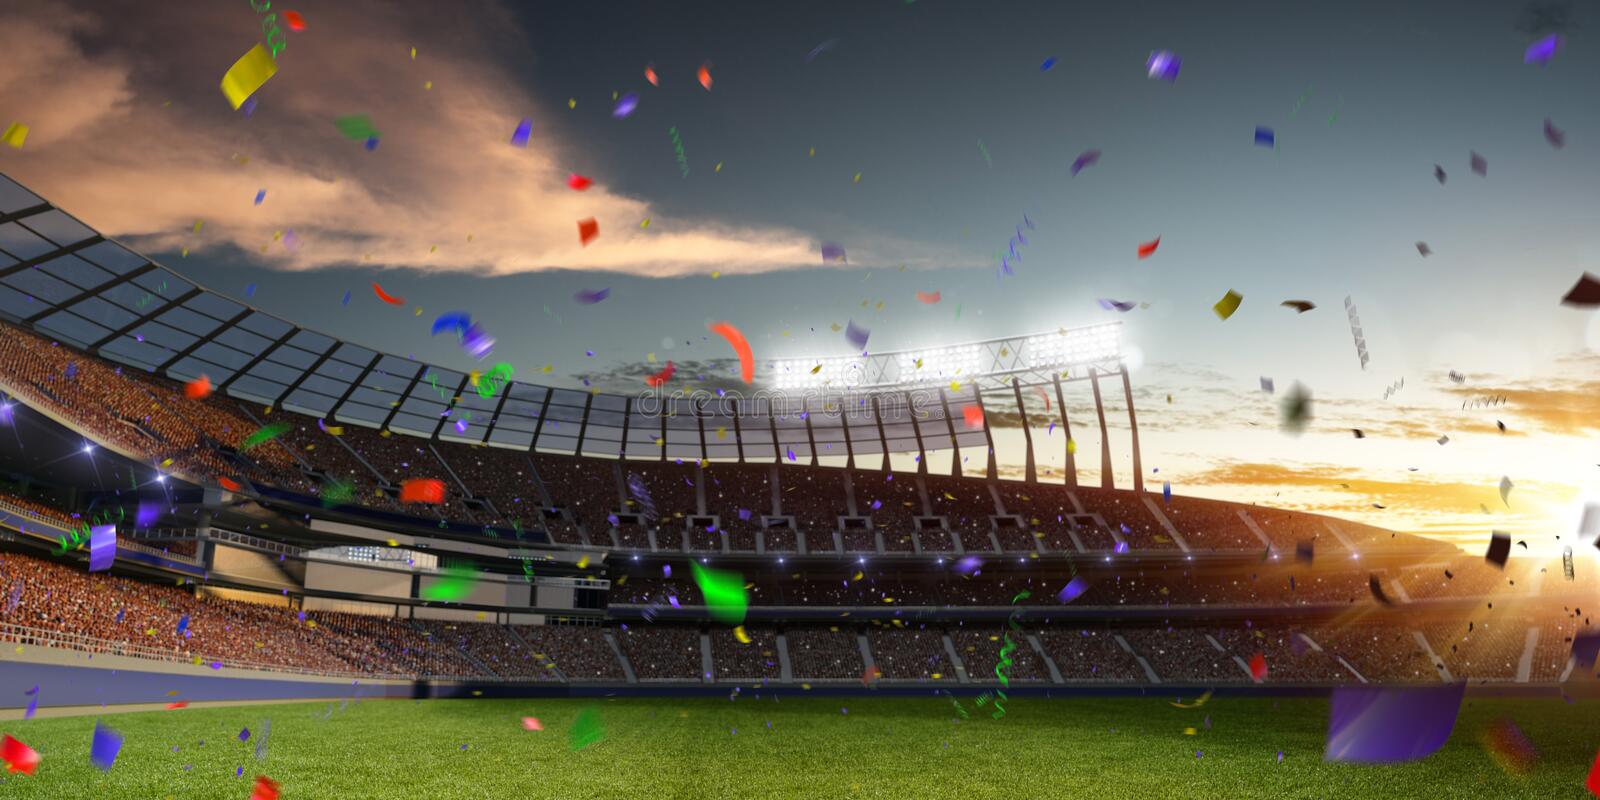 Stadium sunset Confetti and tinsel with people fans. 3d render illustration cloudy. Sky royalty free stock photo